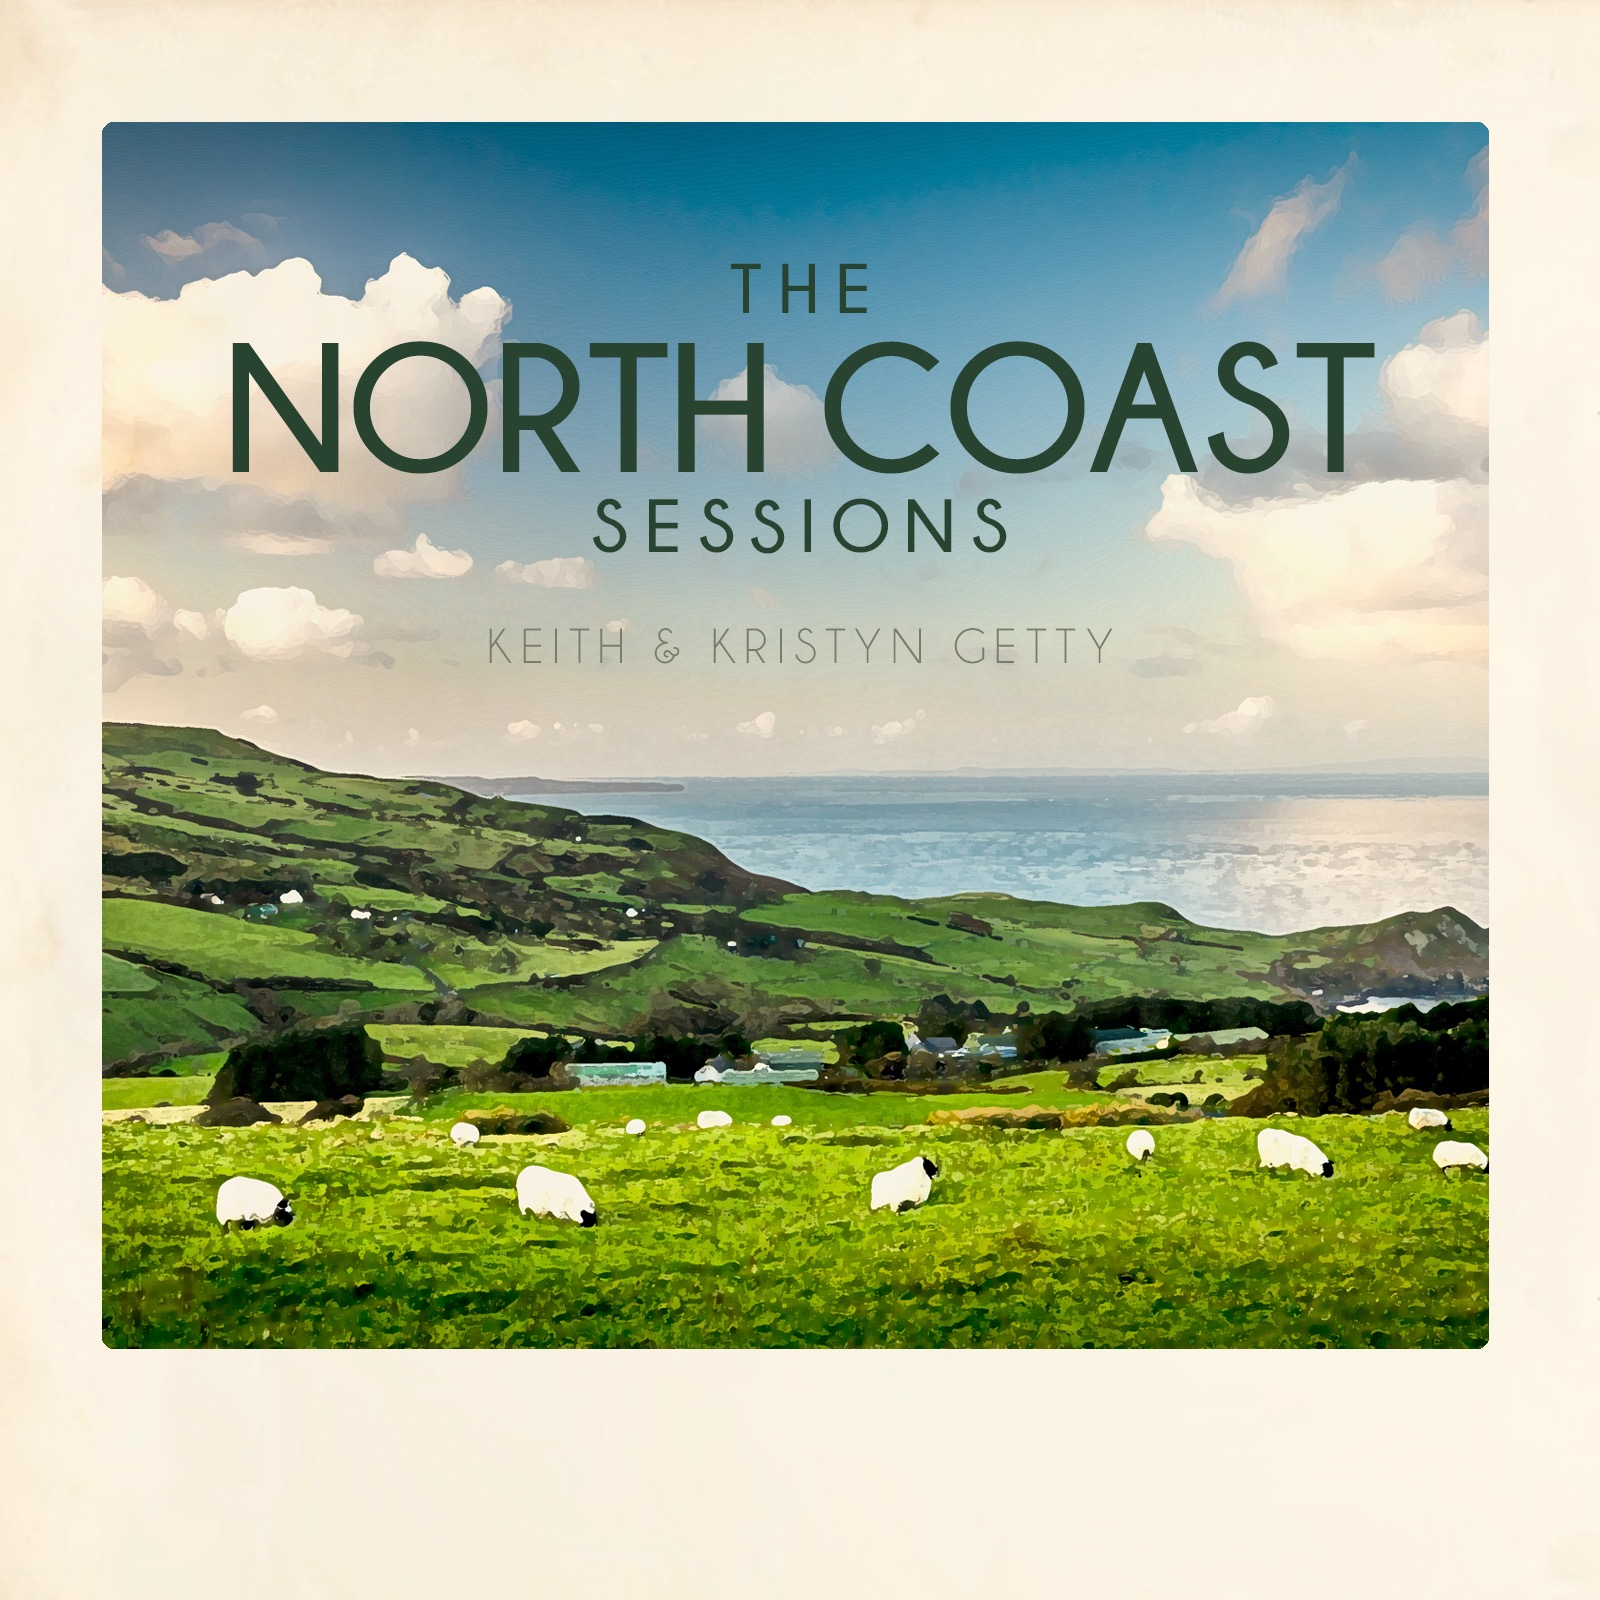 Keith-and-Kristyn-Getty-The-North-Coast-Sessions-Cover.jpg